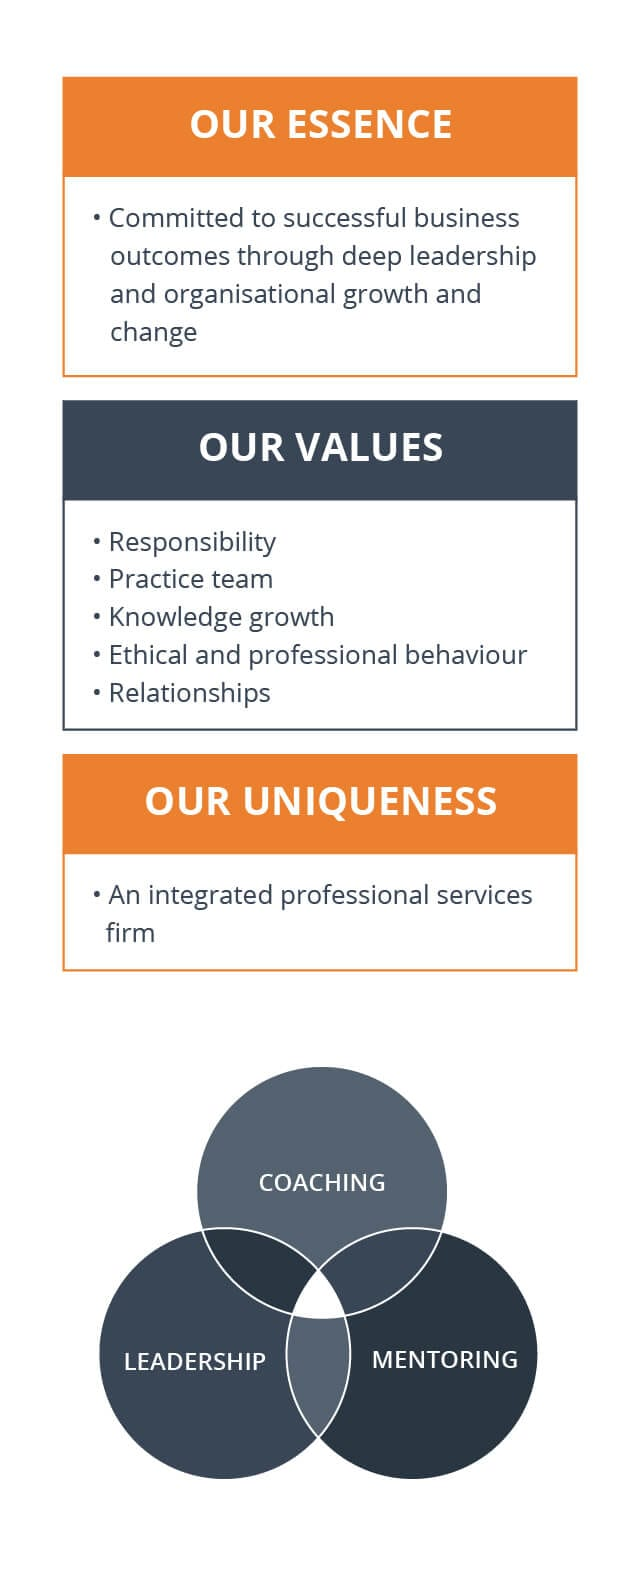 Our values info-graphic